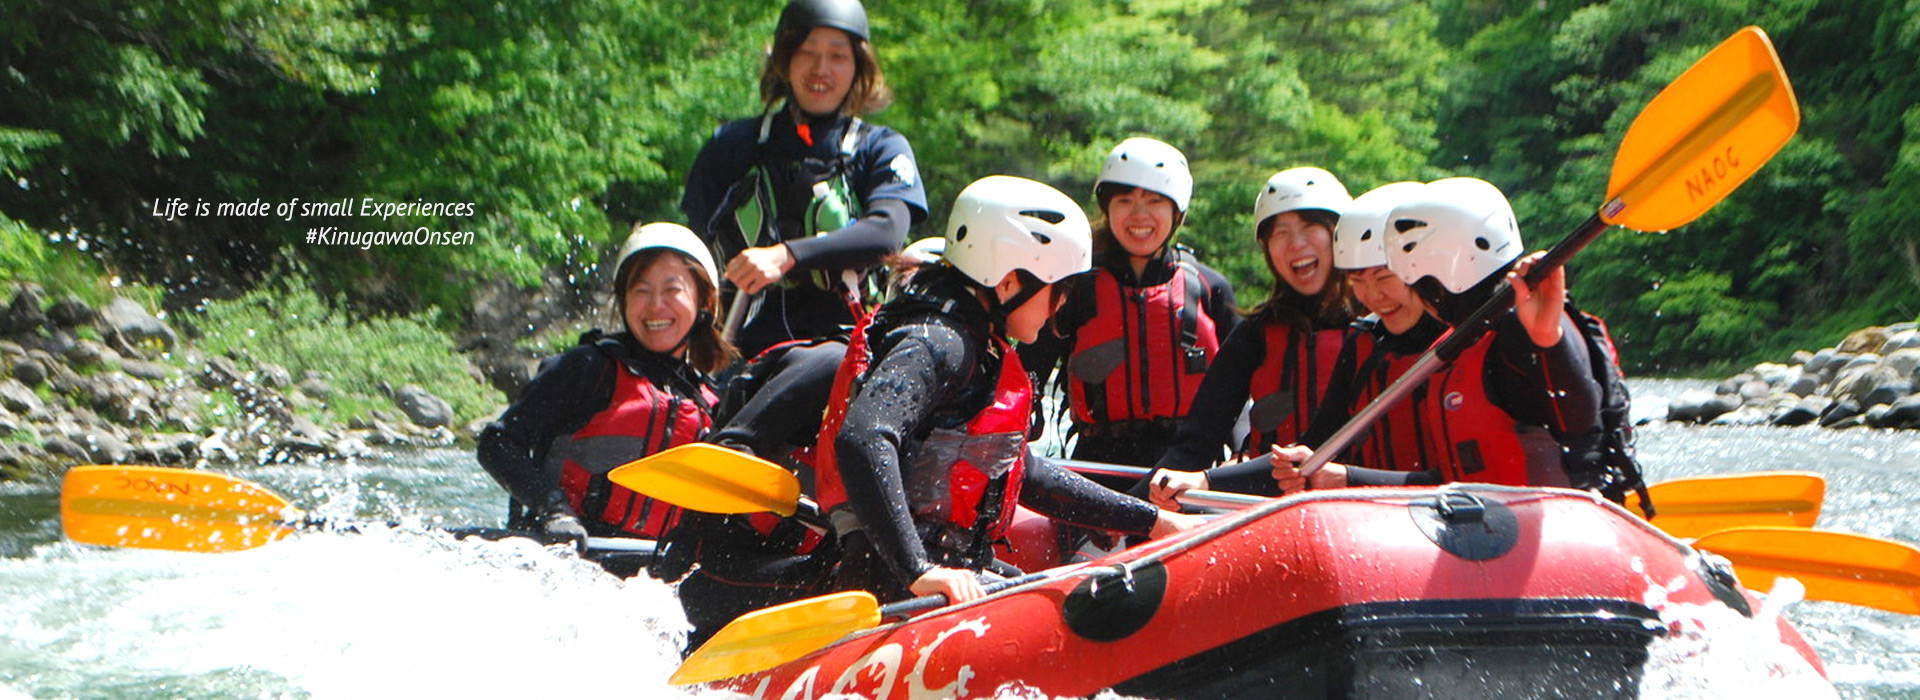 Excited visitors enjoying rafting and canyoning activities down a river in Kinugawa valley near Tokyo